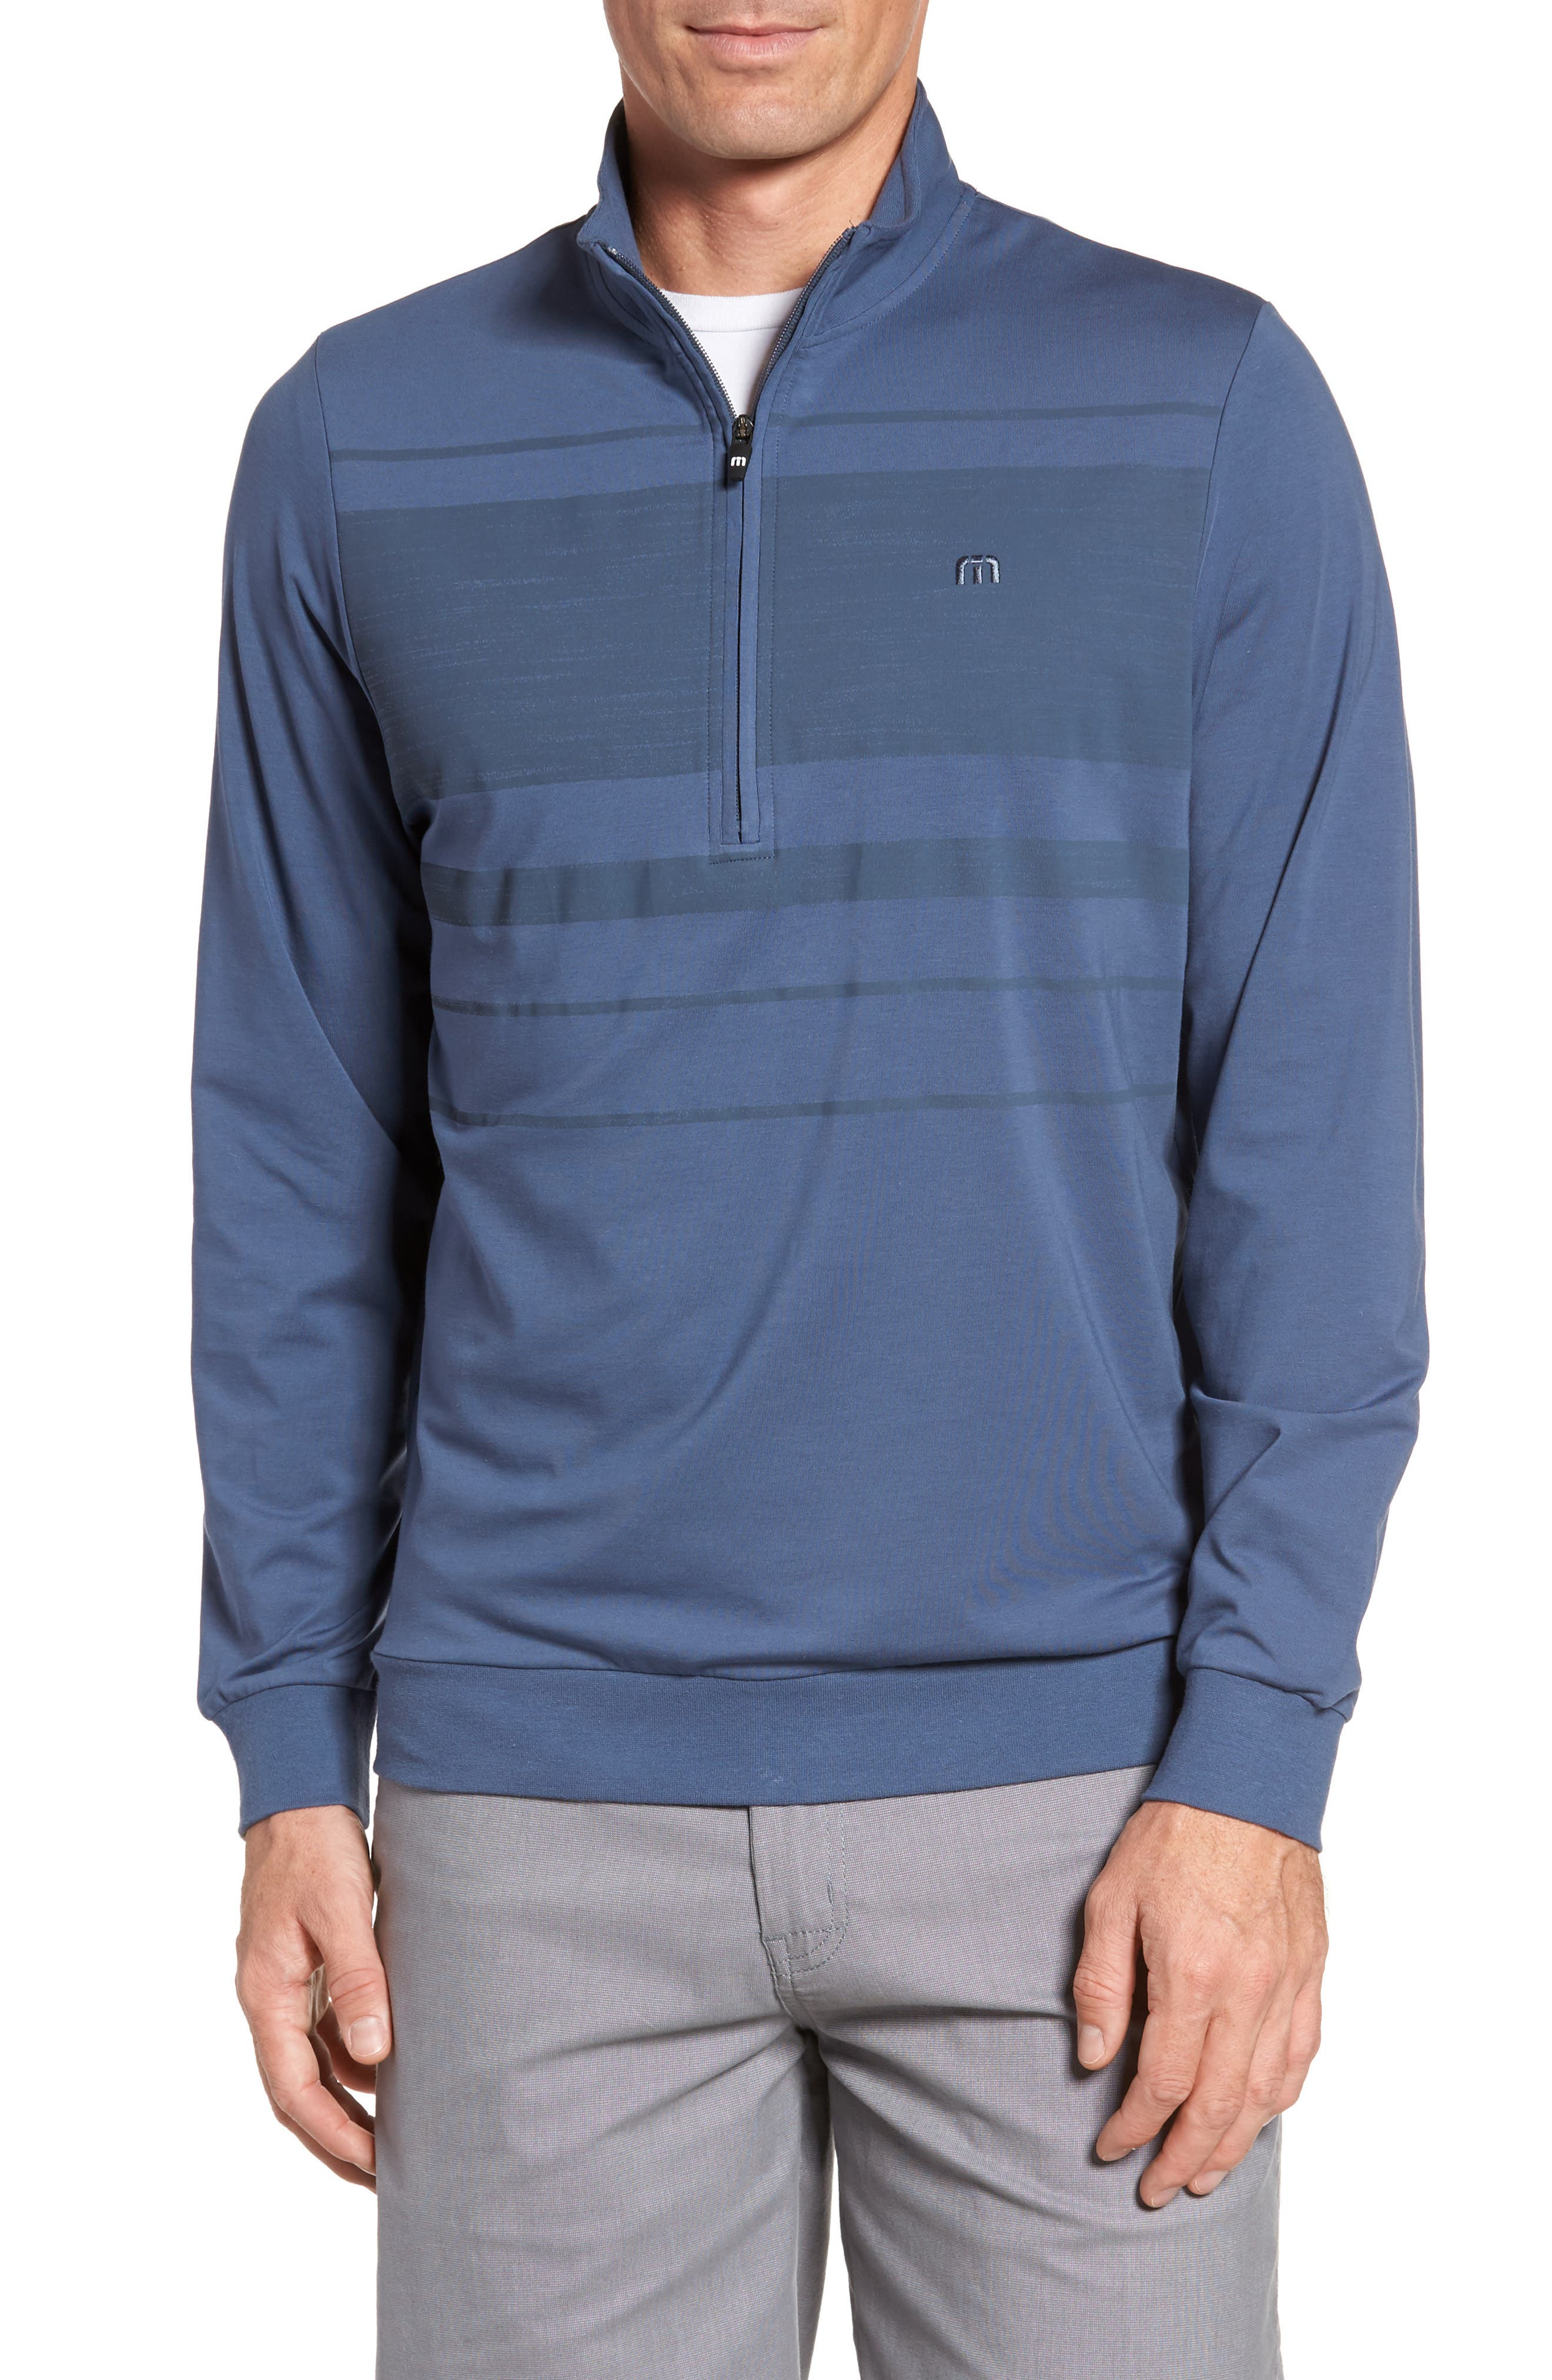 TRAVIS MATHEW Peace Easy Pullover